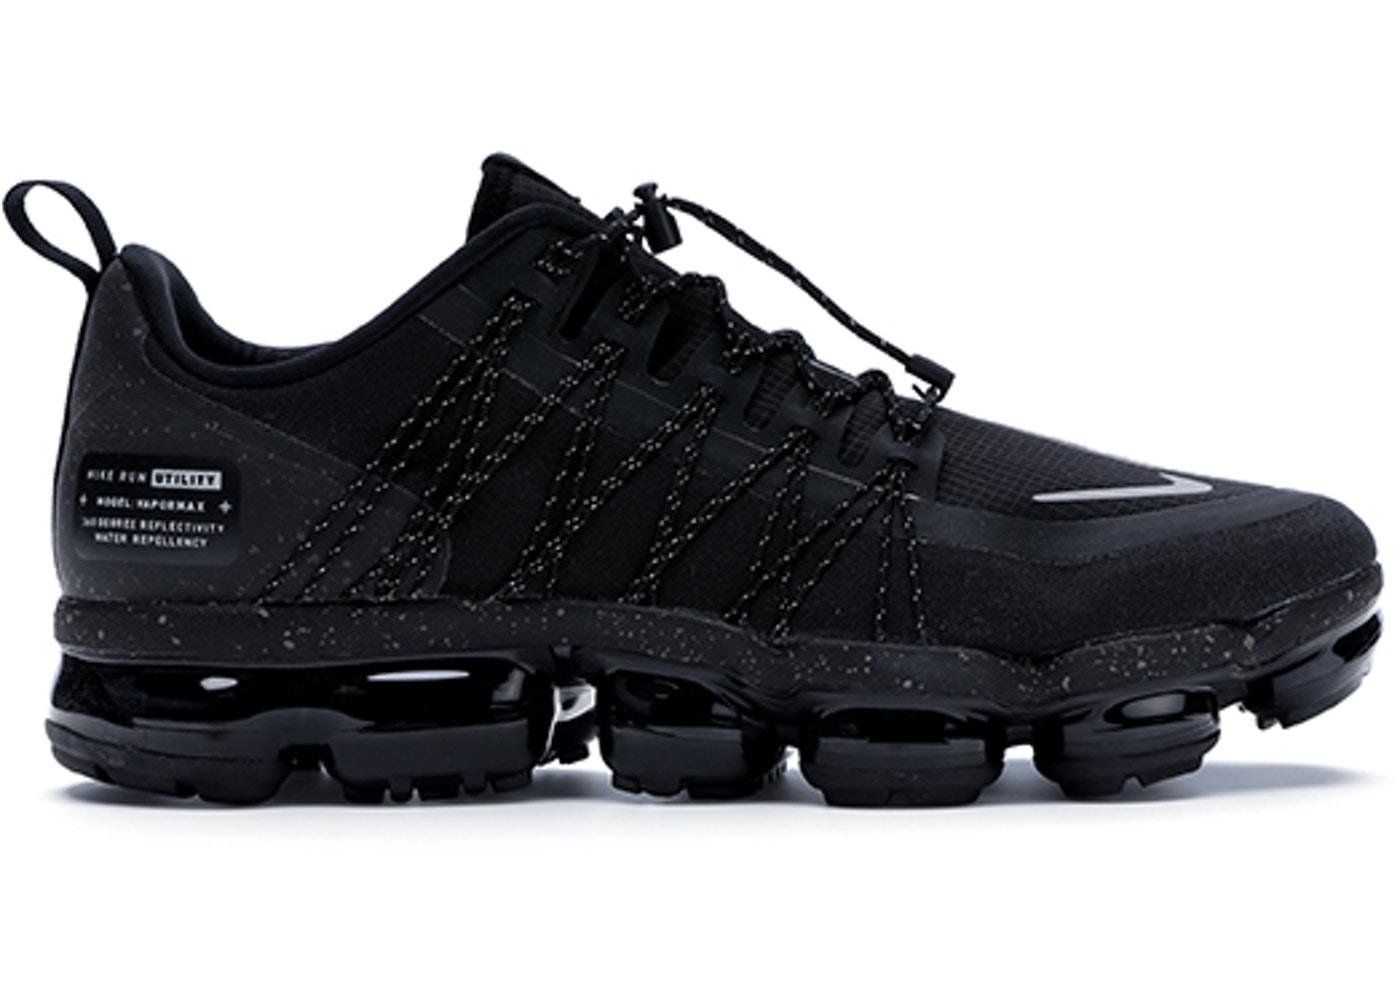 factory authentic b5d52 898c2 Air VaporMax Run Utility Black Reflect Silver